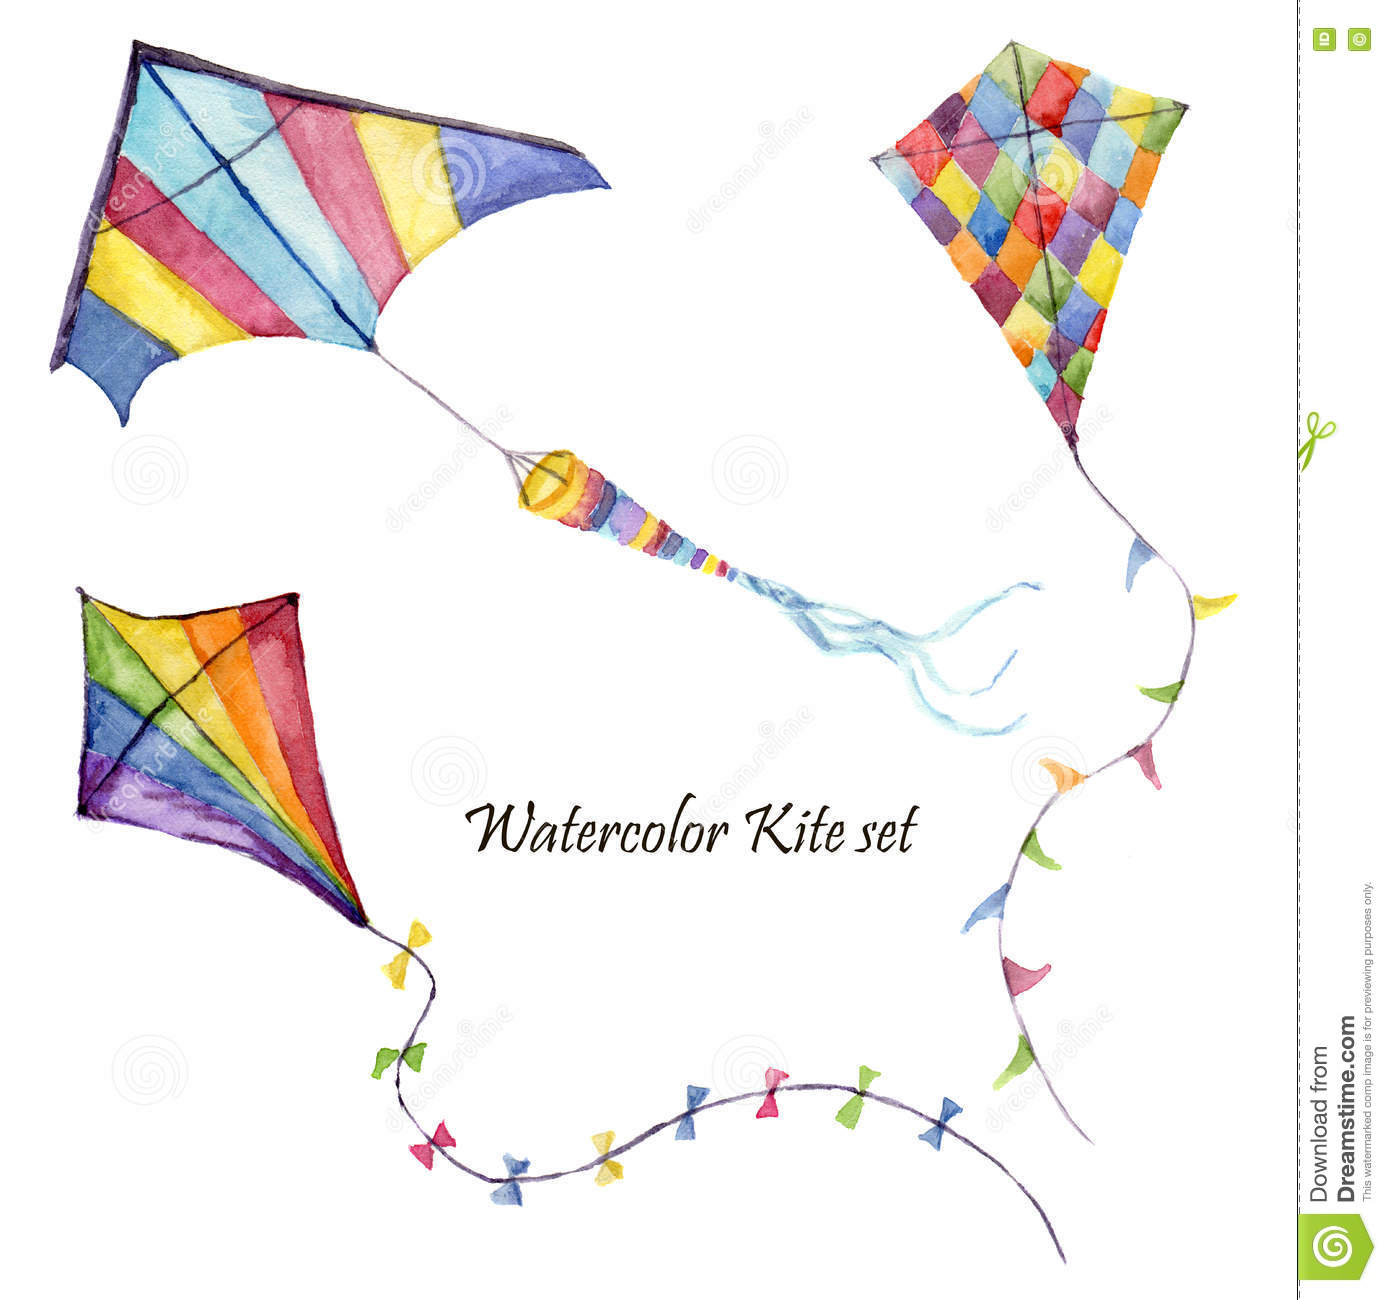 Watercolor checkerboard and striped kites air set. Hand drawn vintage kite with retro design. Illustrations isolated on white back